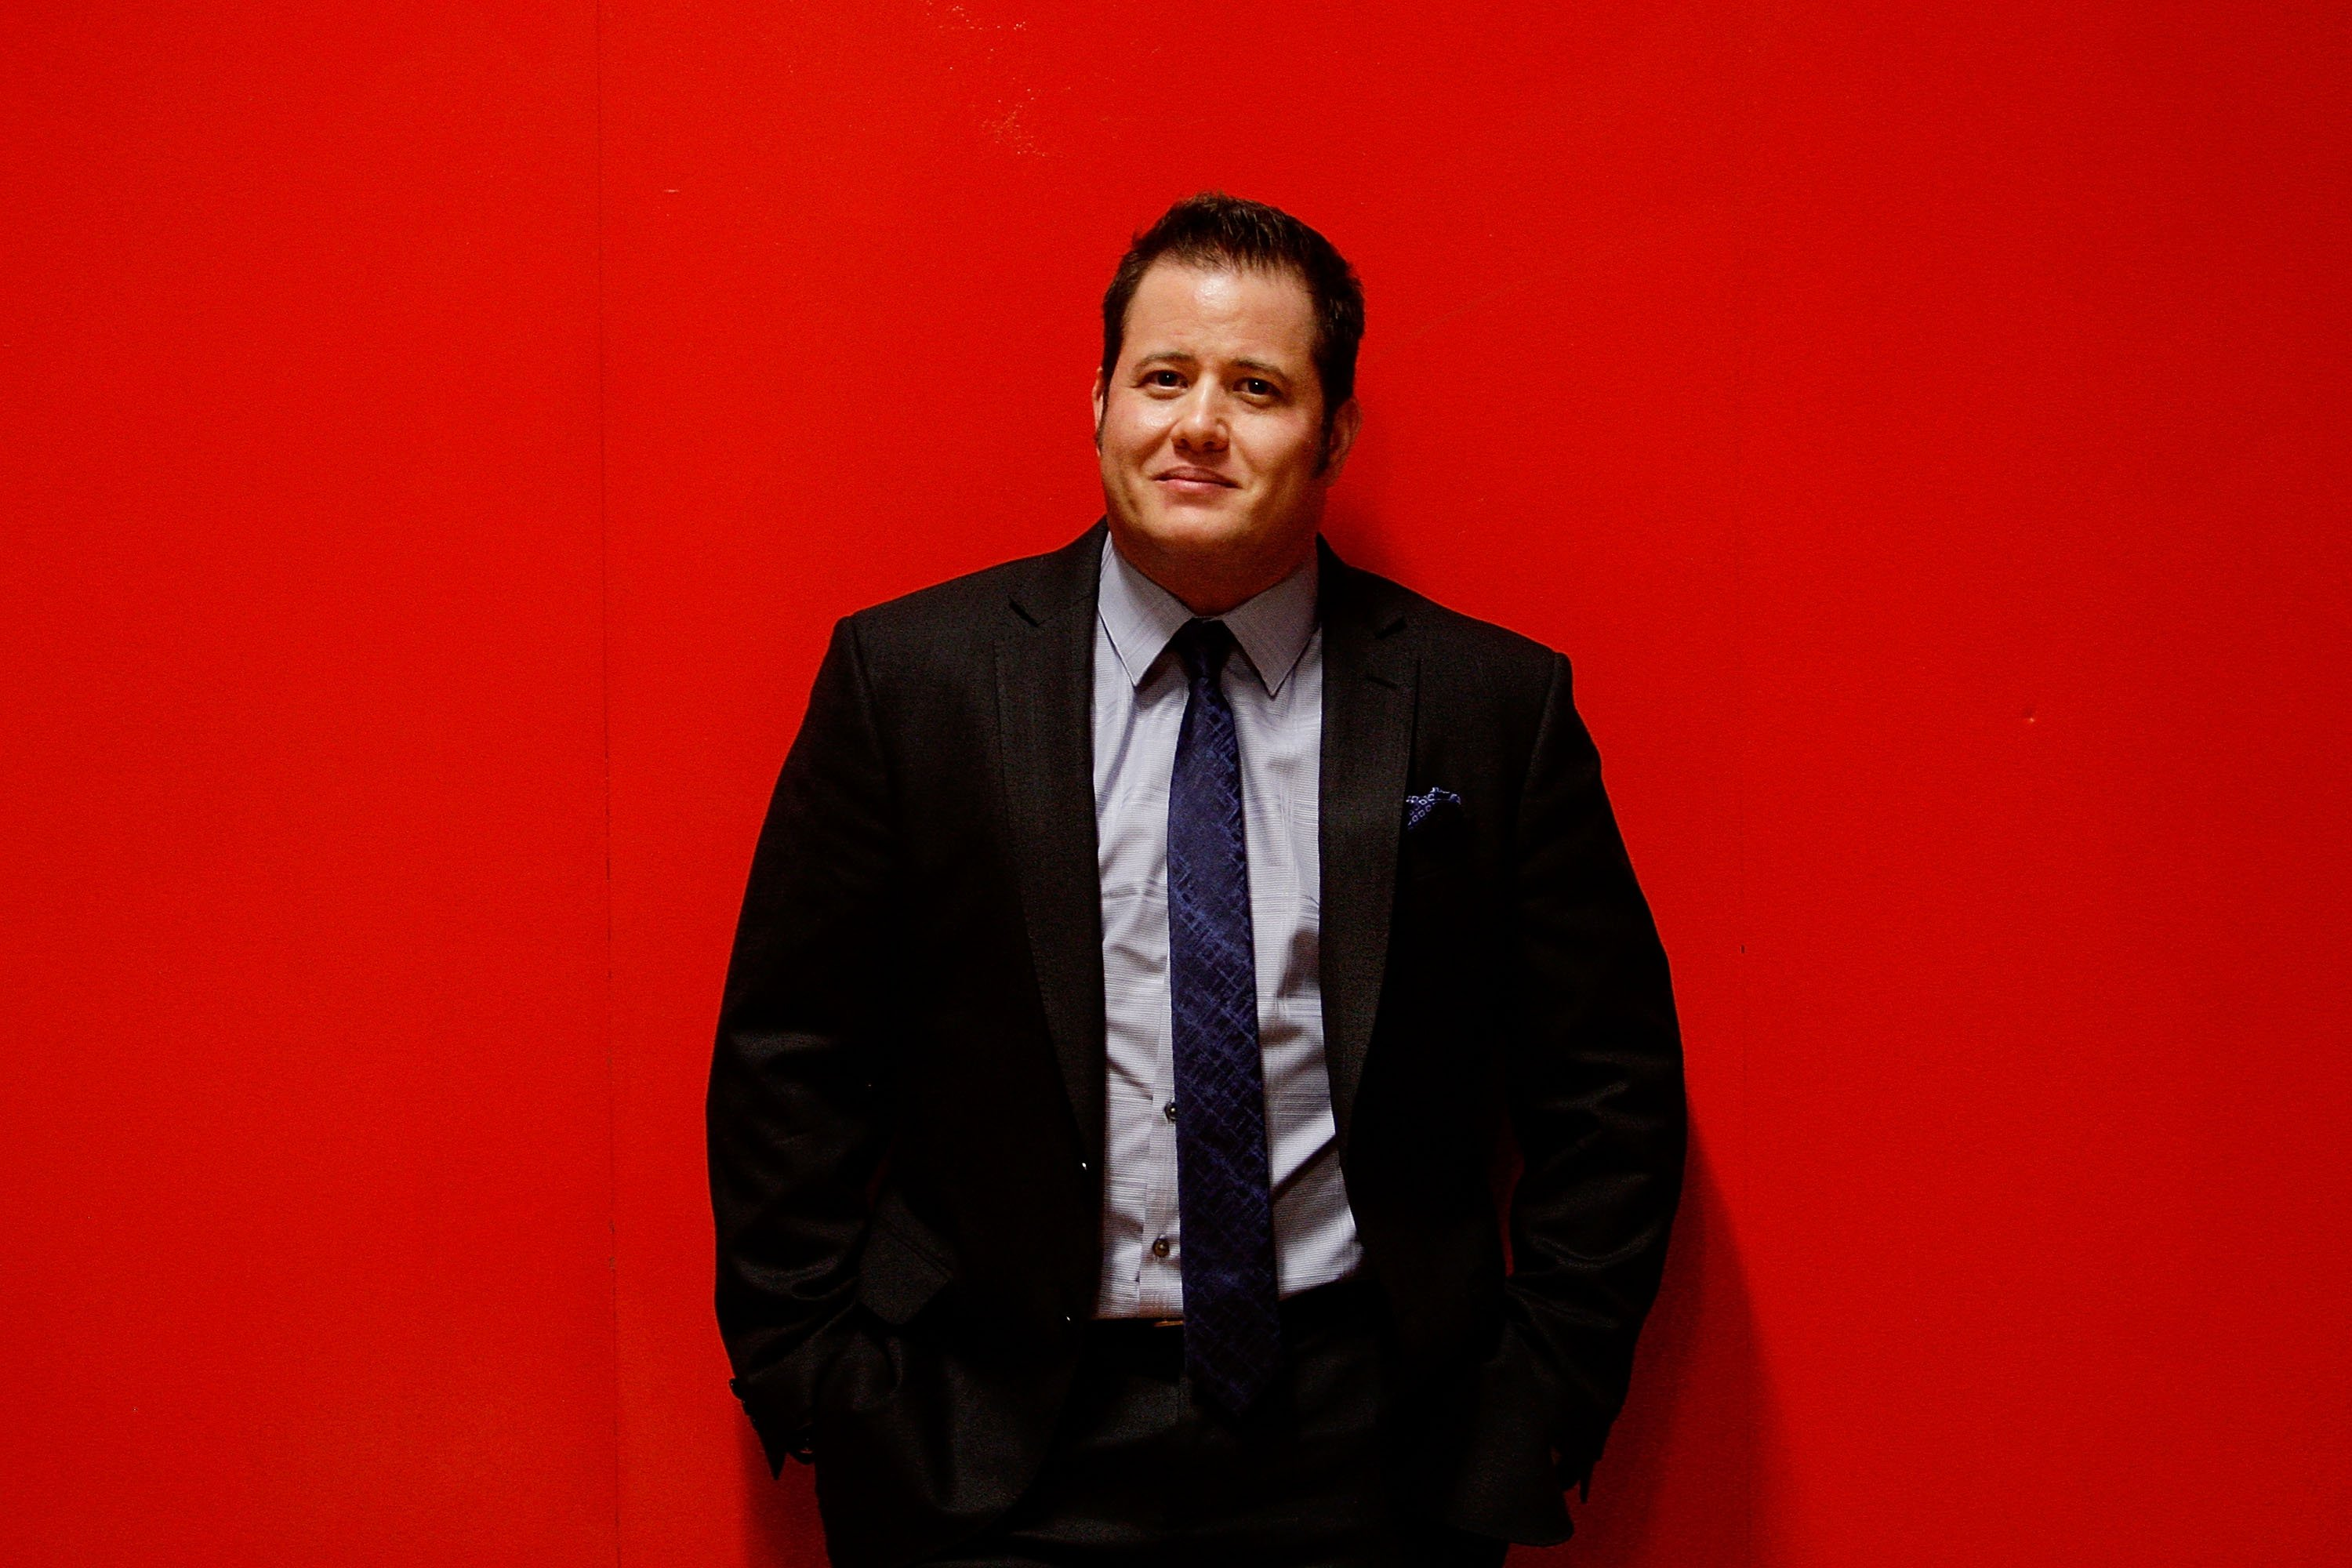 Image Source: Getty Images/Chaz Bono posing for the camera